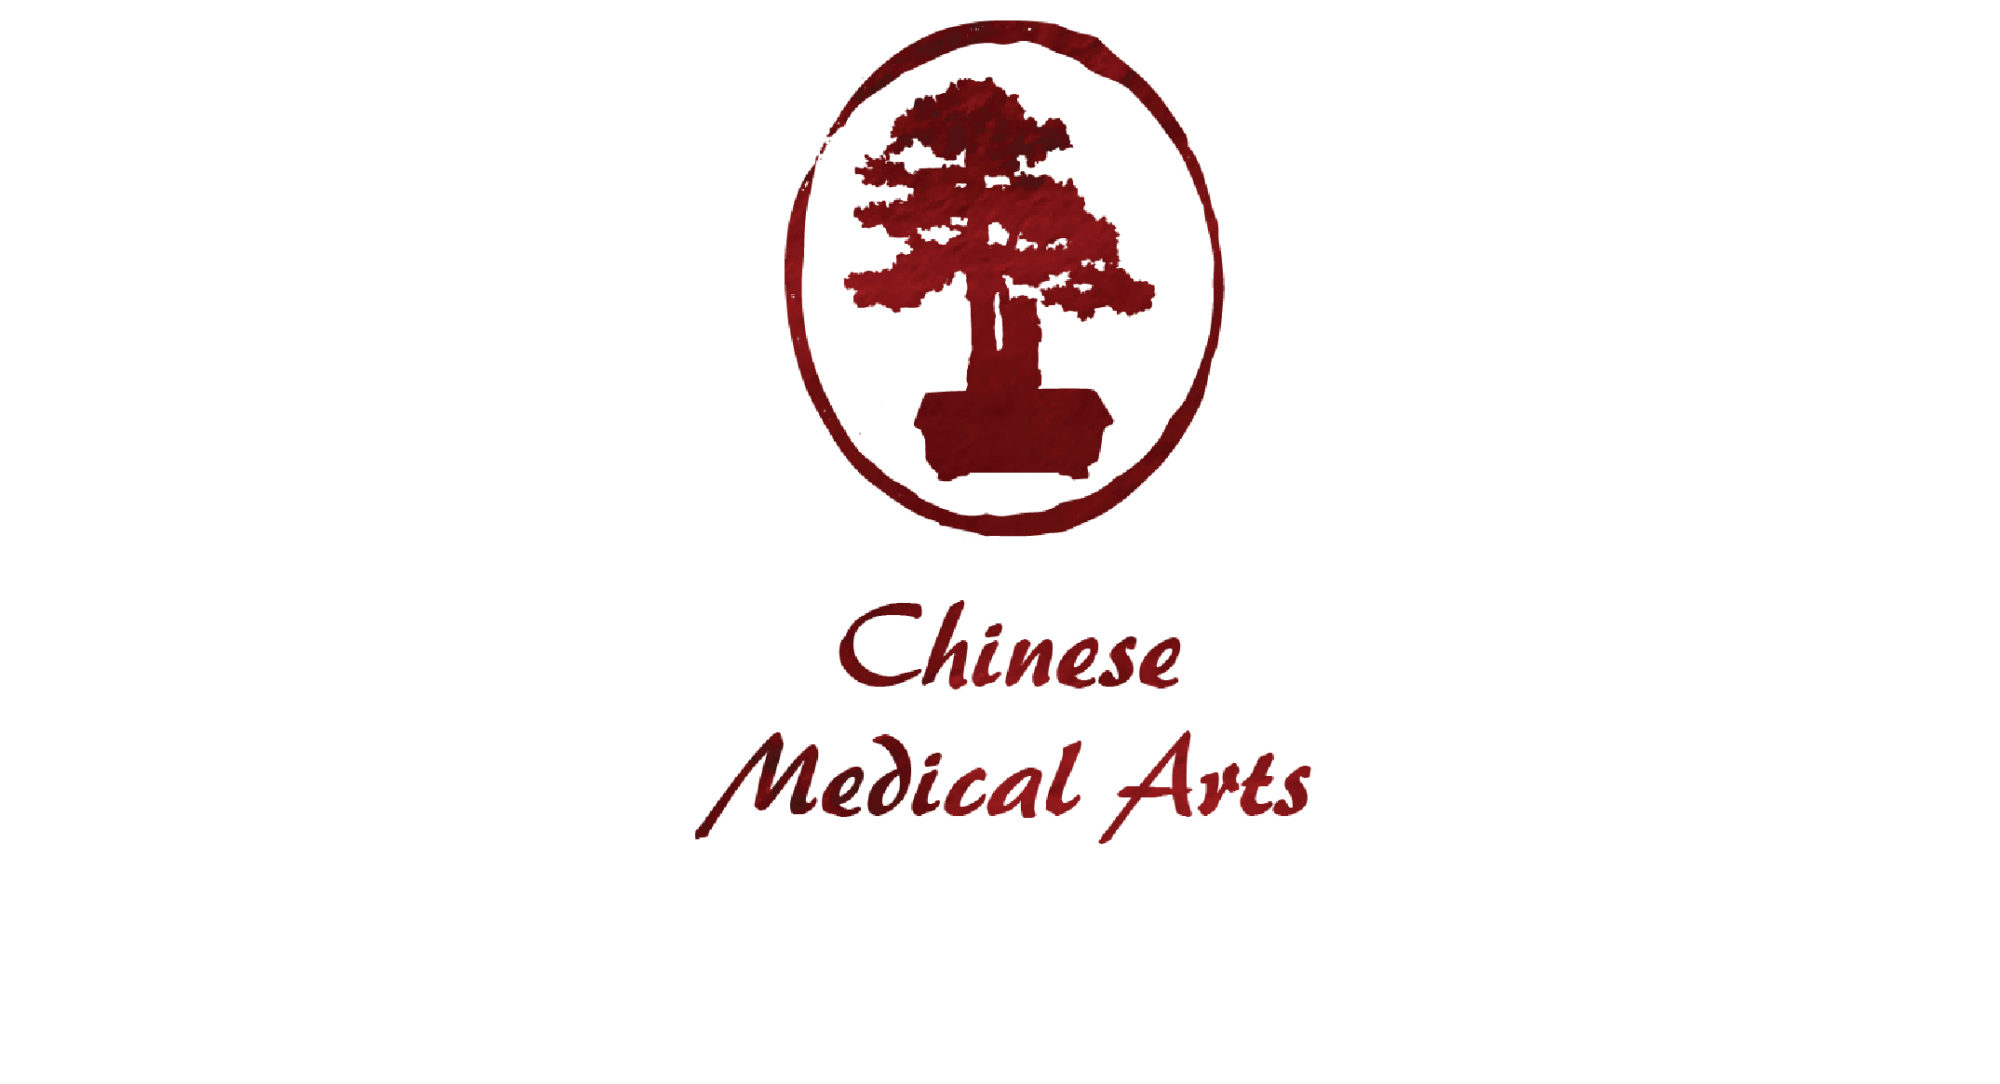 Chinese Medical Arts